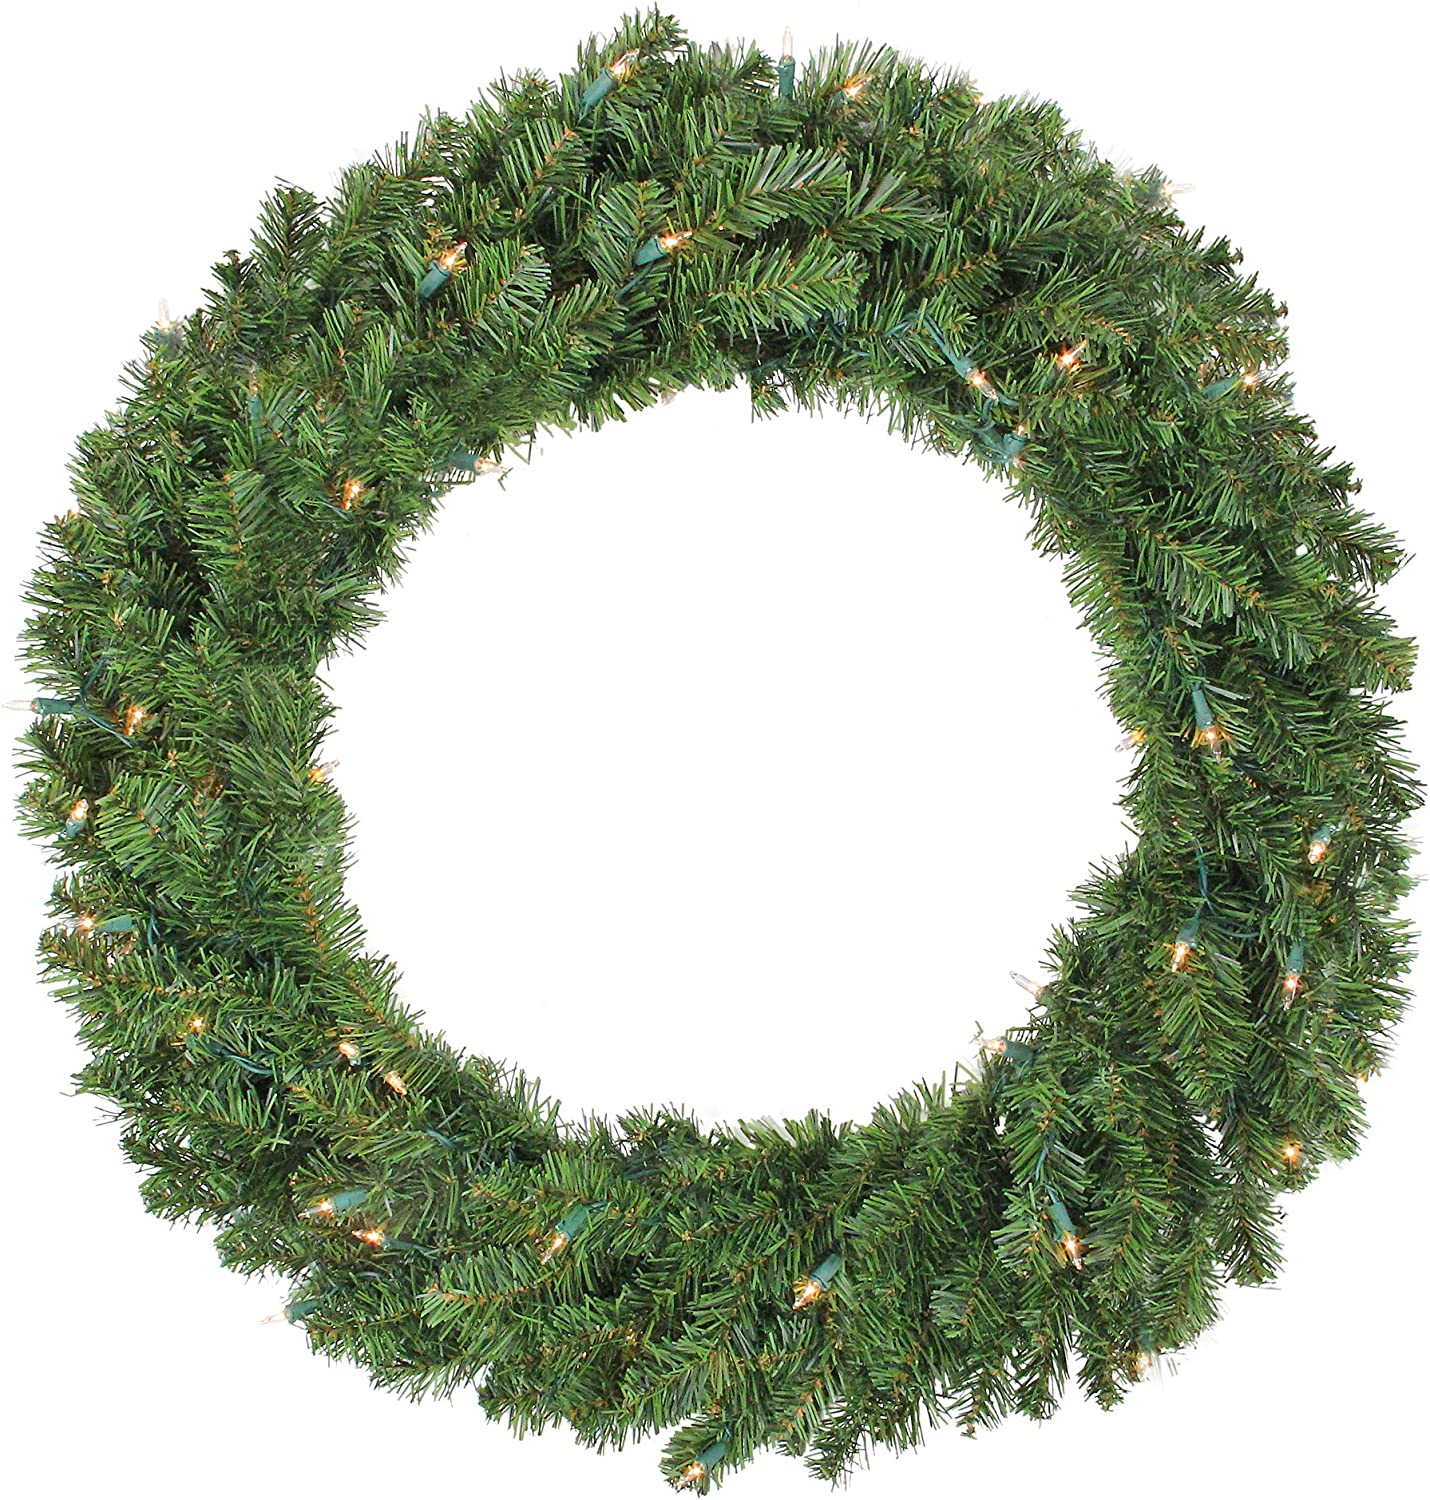 Amazon Com Northlight 36 Pre Lit Canadian Pine Artificial Christmas Wreath Clear Lights Home Kitchen